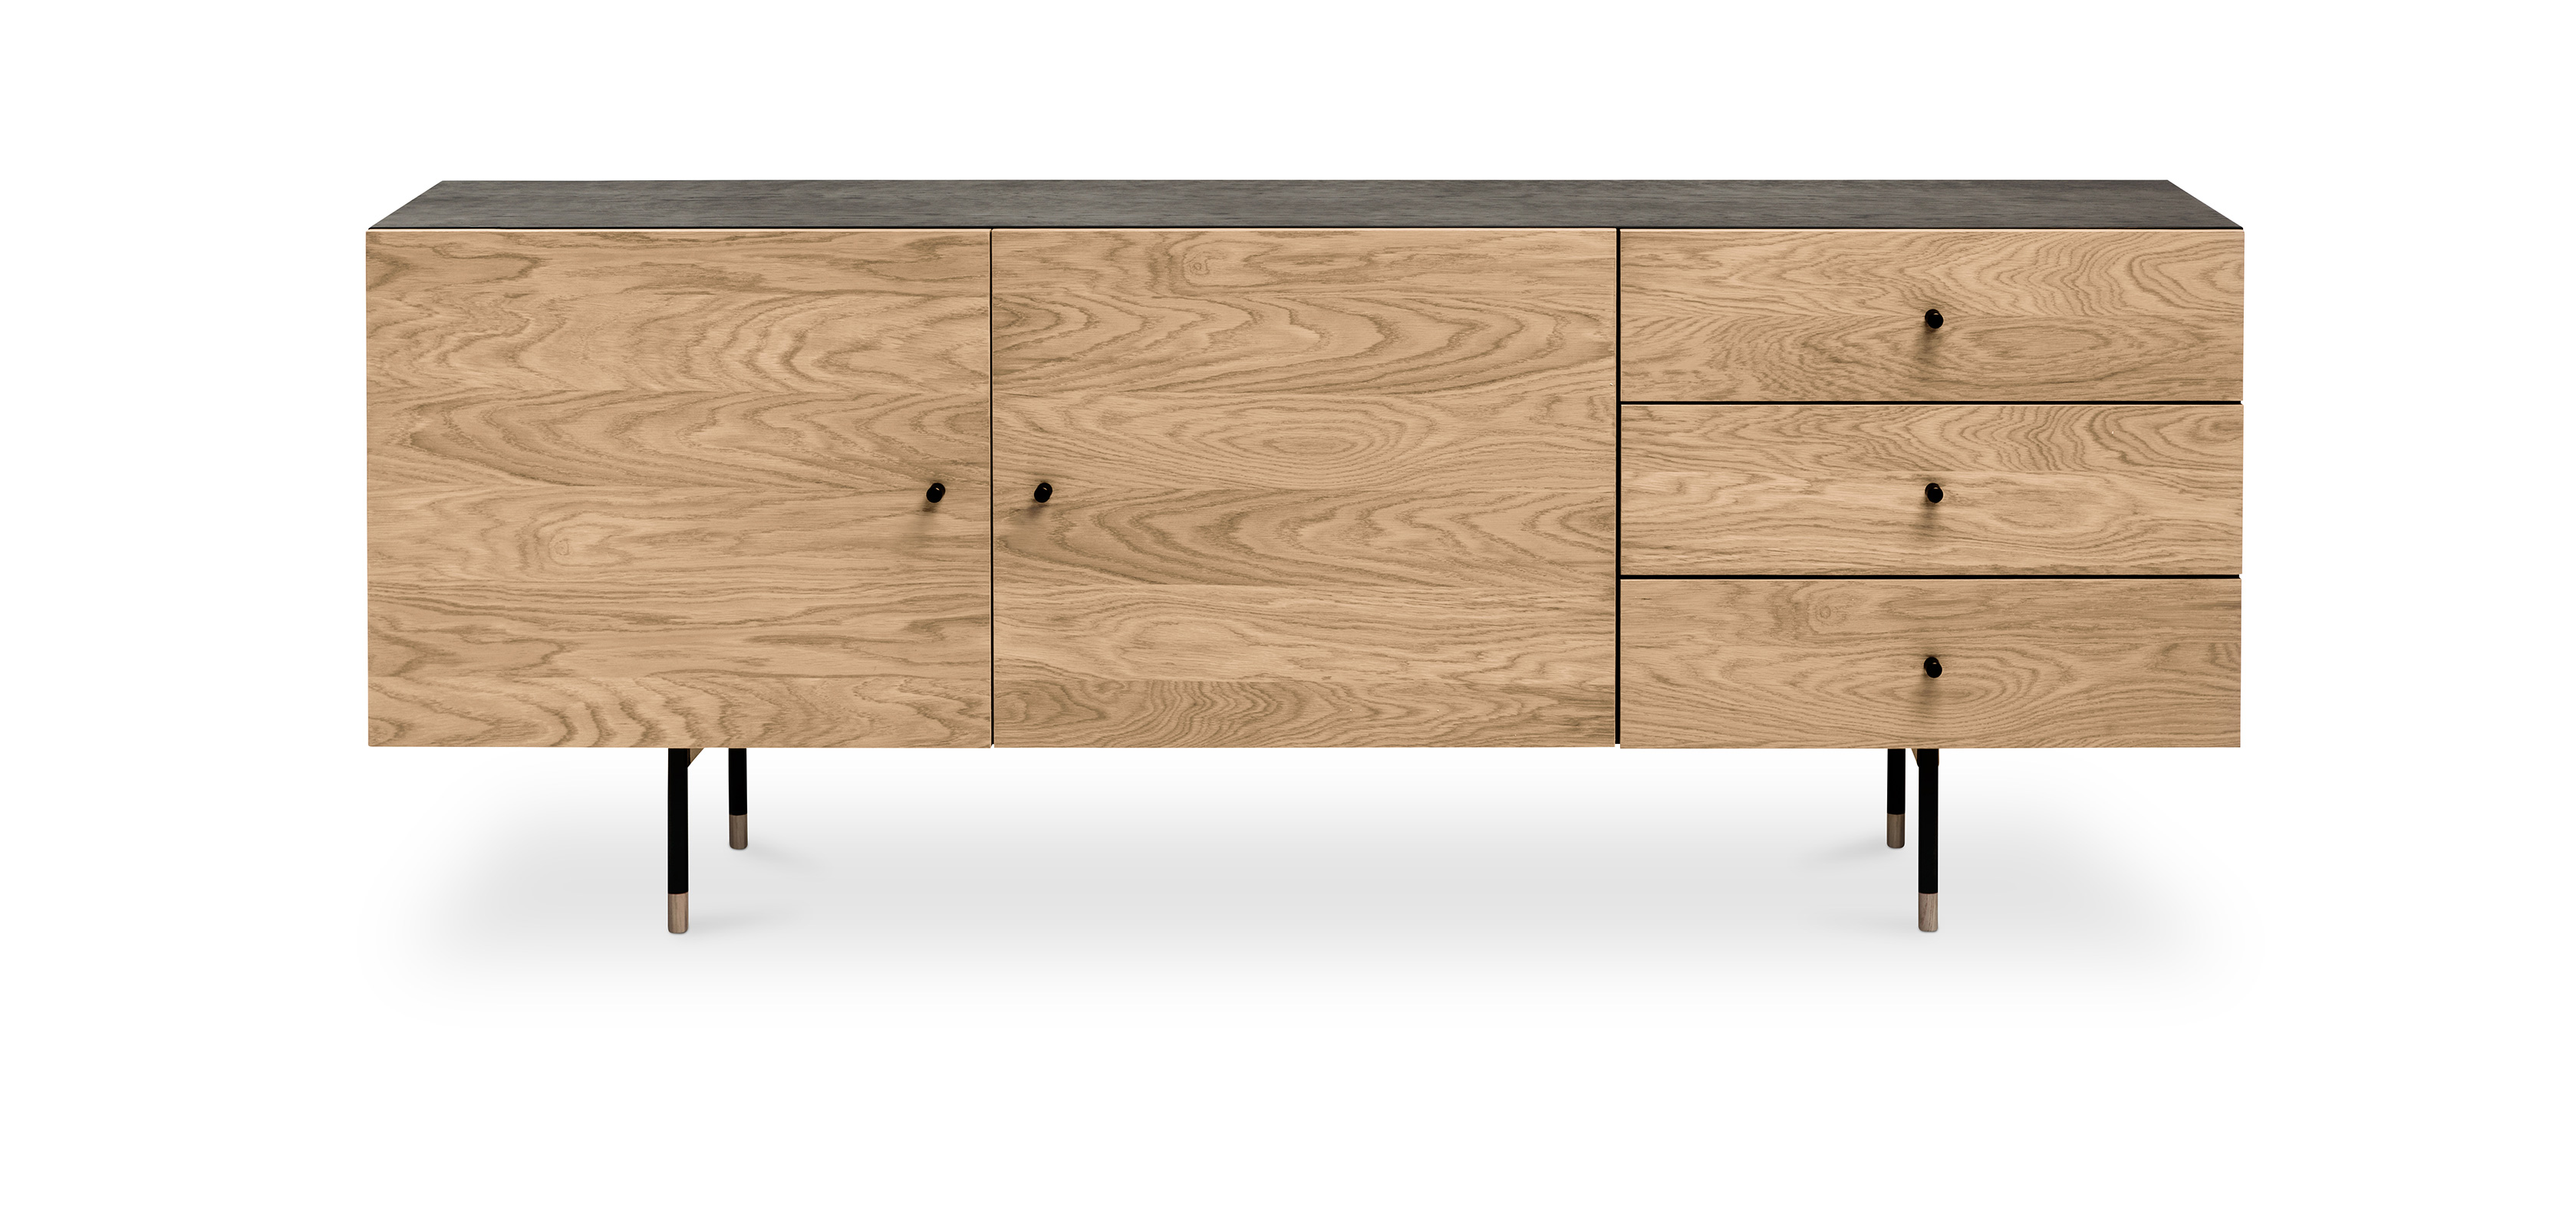 buffet en bois bicolore de style scandinave jafre pas cher. Black Bedroom Furniture Sets. Home Design Ideas